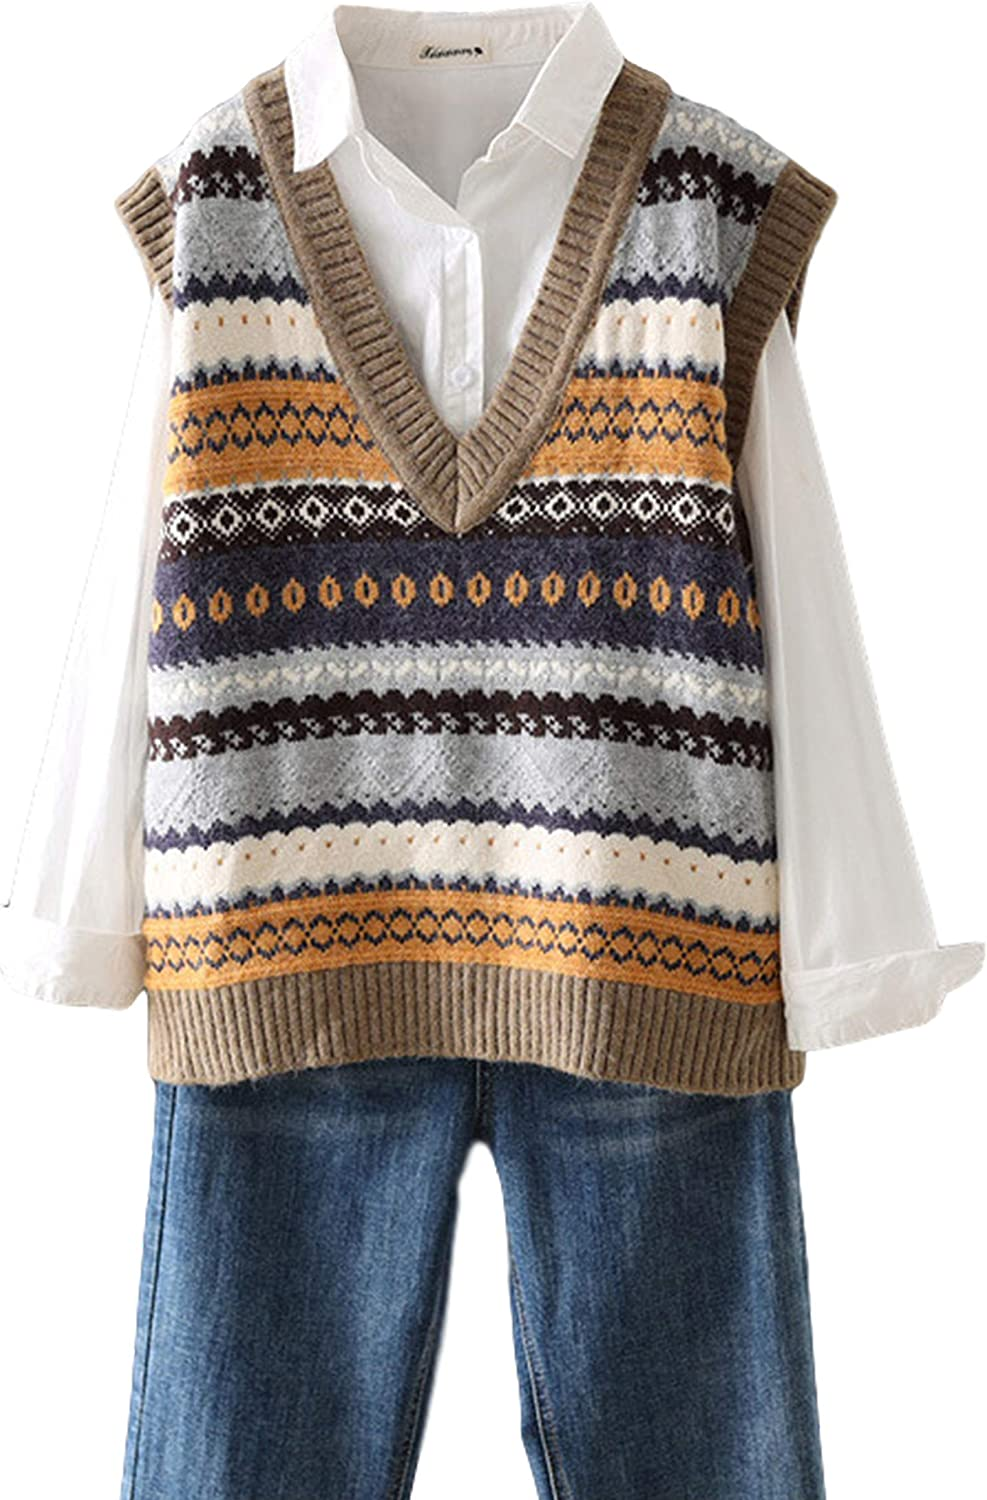 Gihuo Women's Vintage V Neck Sleeveless Ethnic Loose Knitted Sweater Vest Gilet